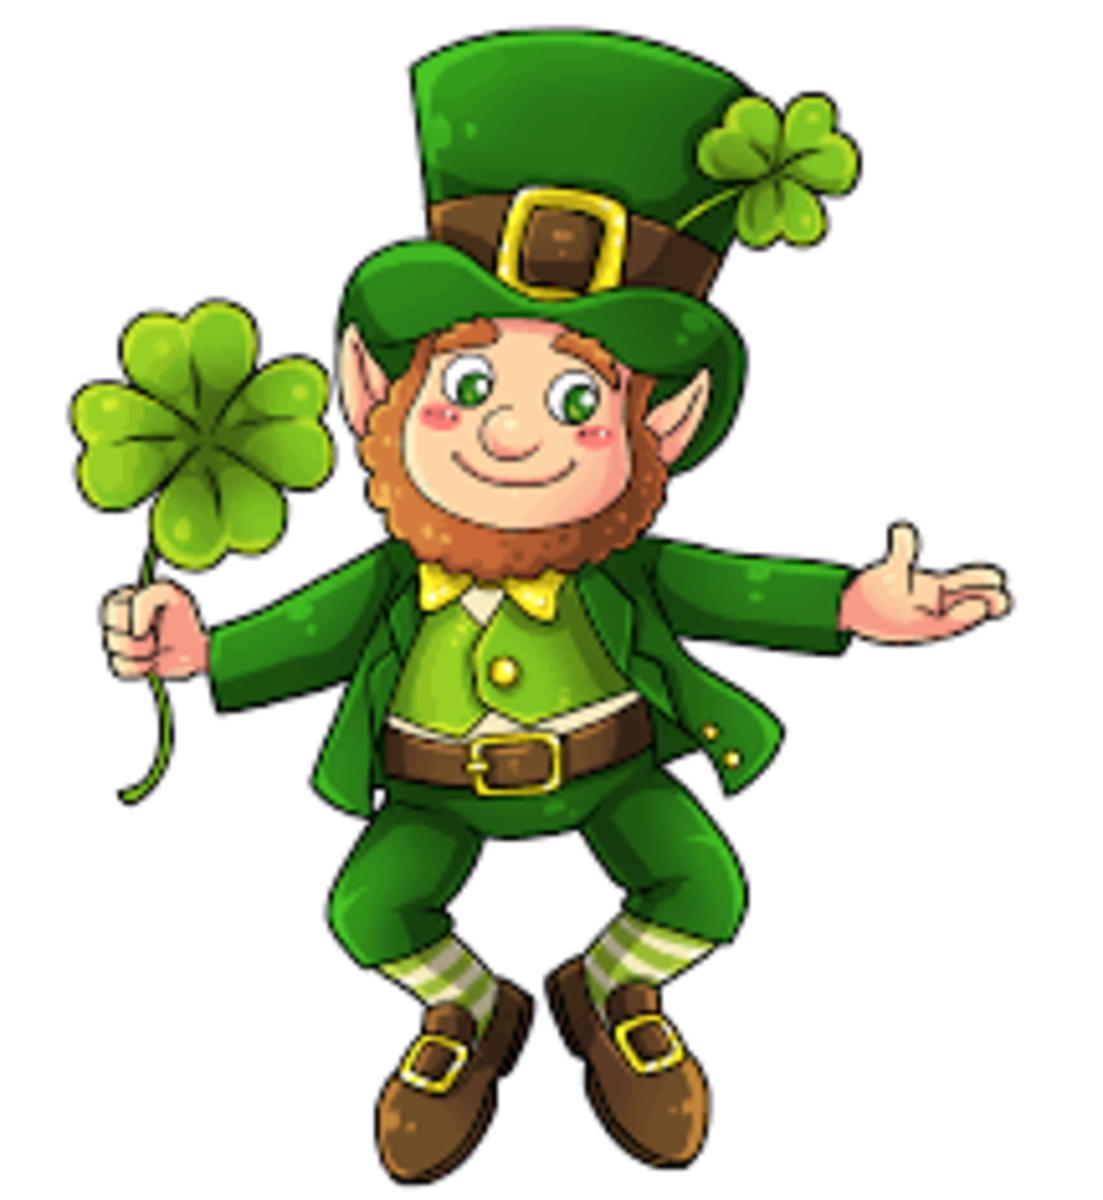 Does wearing green make you invisible to leprechauns?